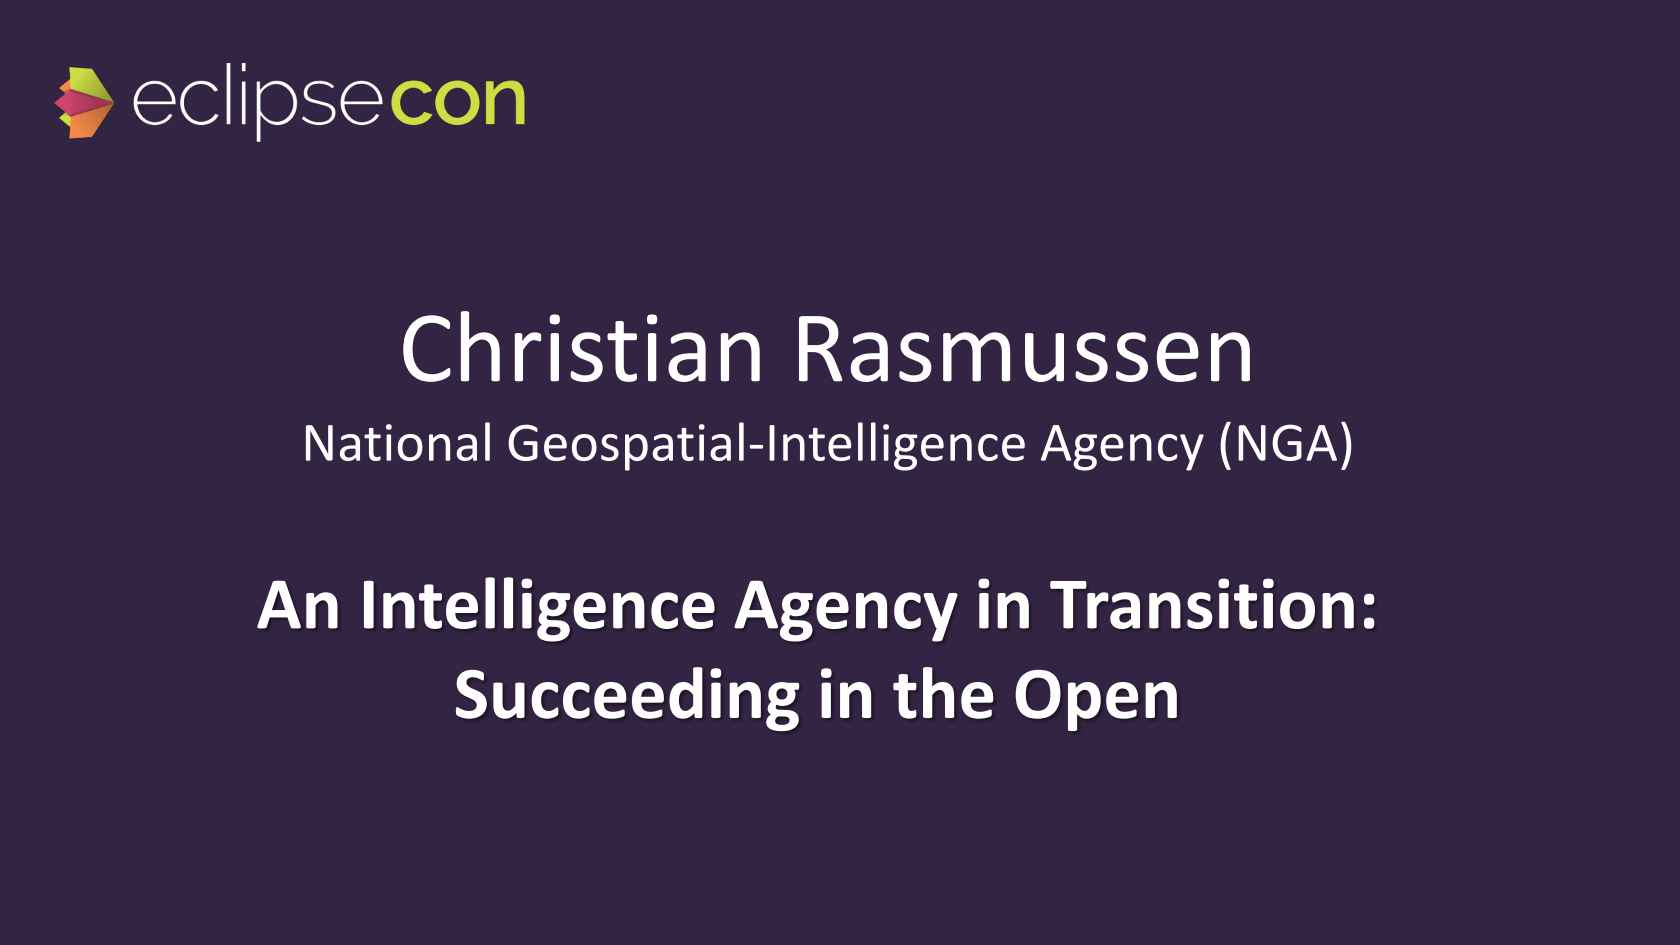 An Intelligence Agency in Transition: Succeeding in the Open